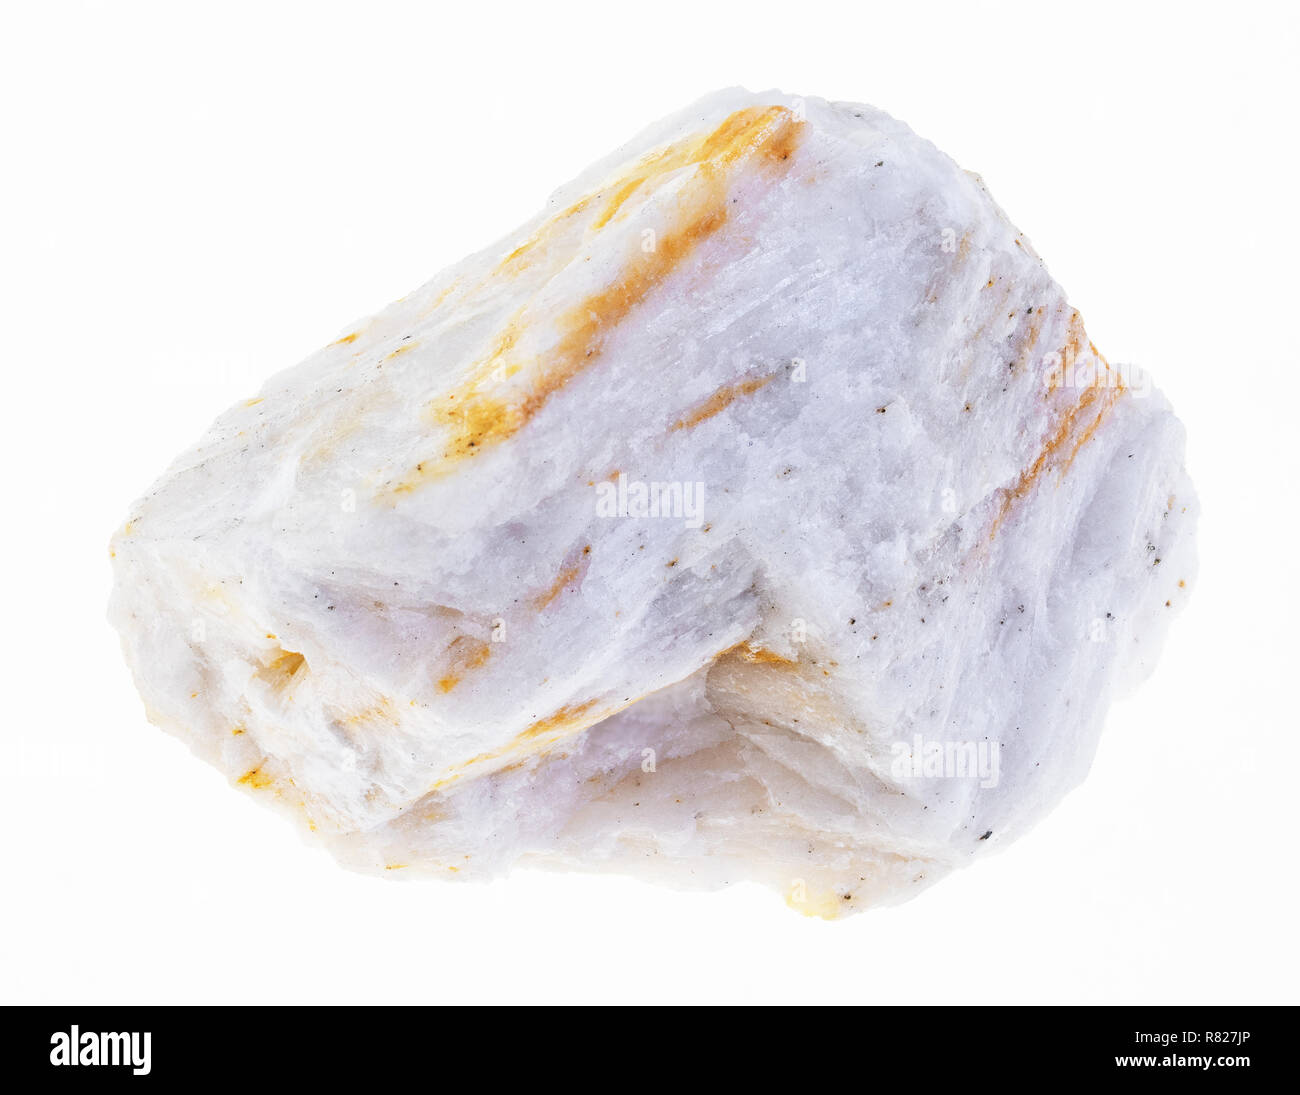 macro photography of natural mineral from geological collection - raw barite (baryte) ore on white background - Stock Image